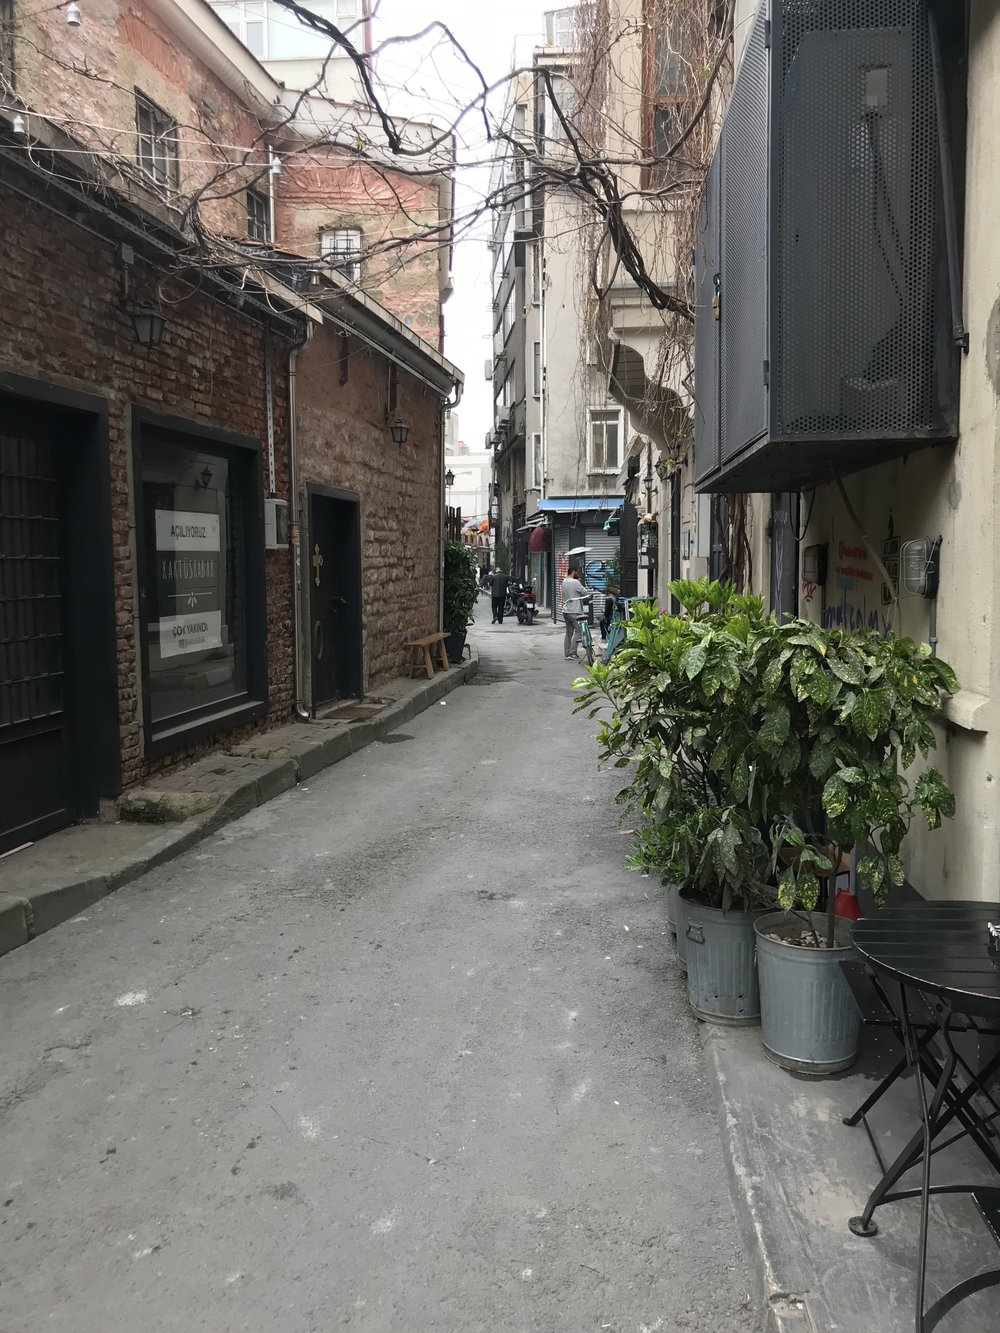 A neat little street near the place we stayed in Istanbul